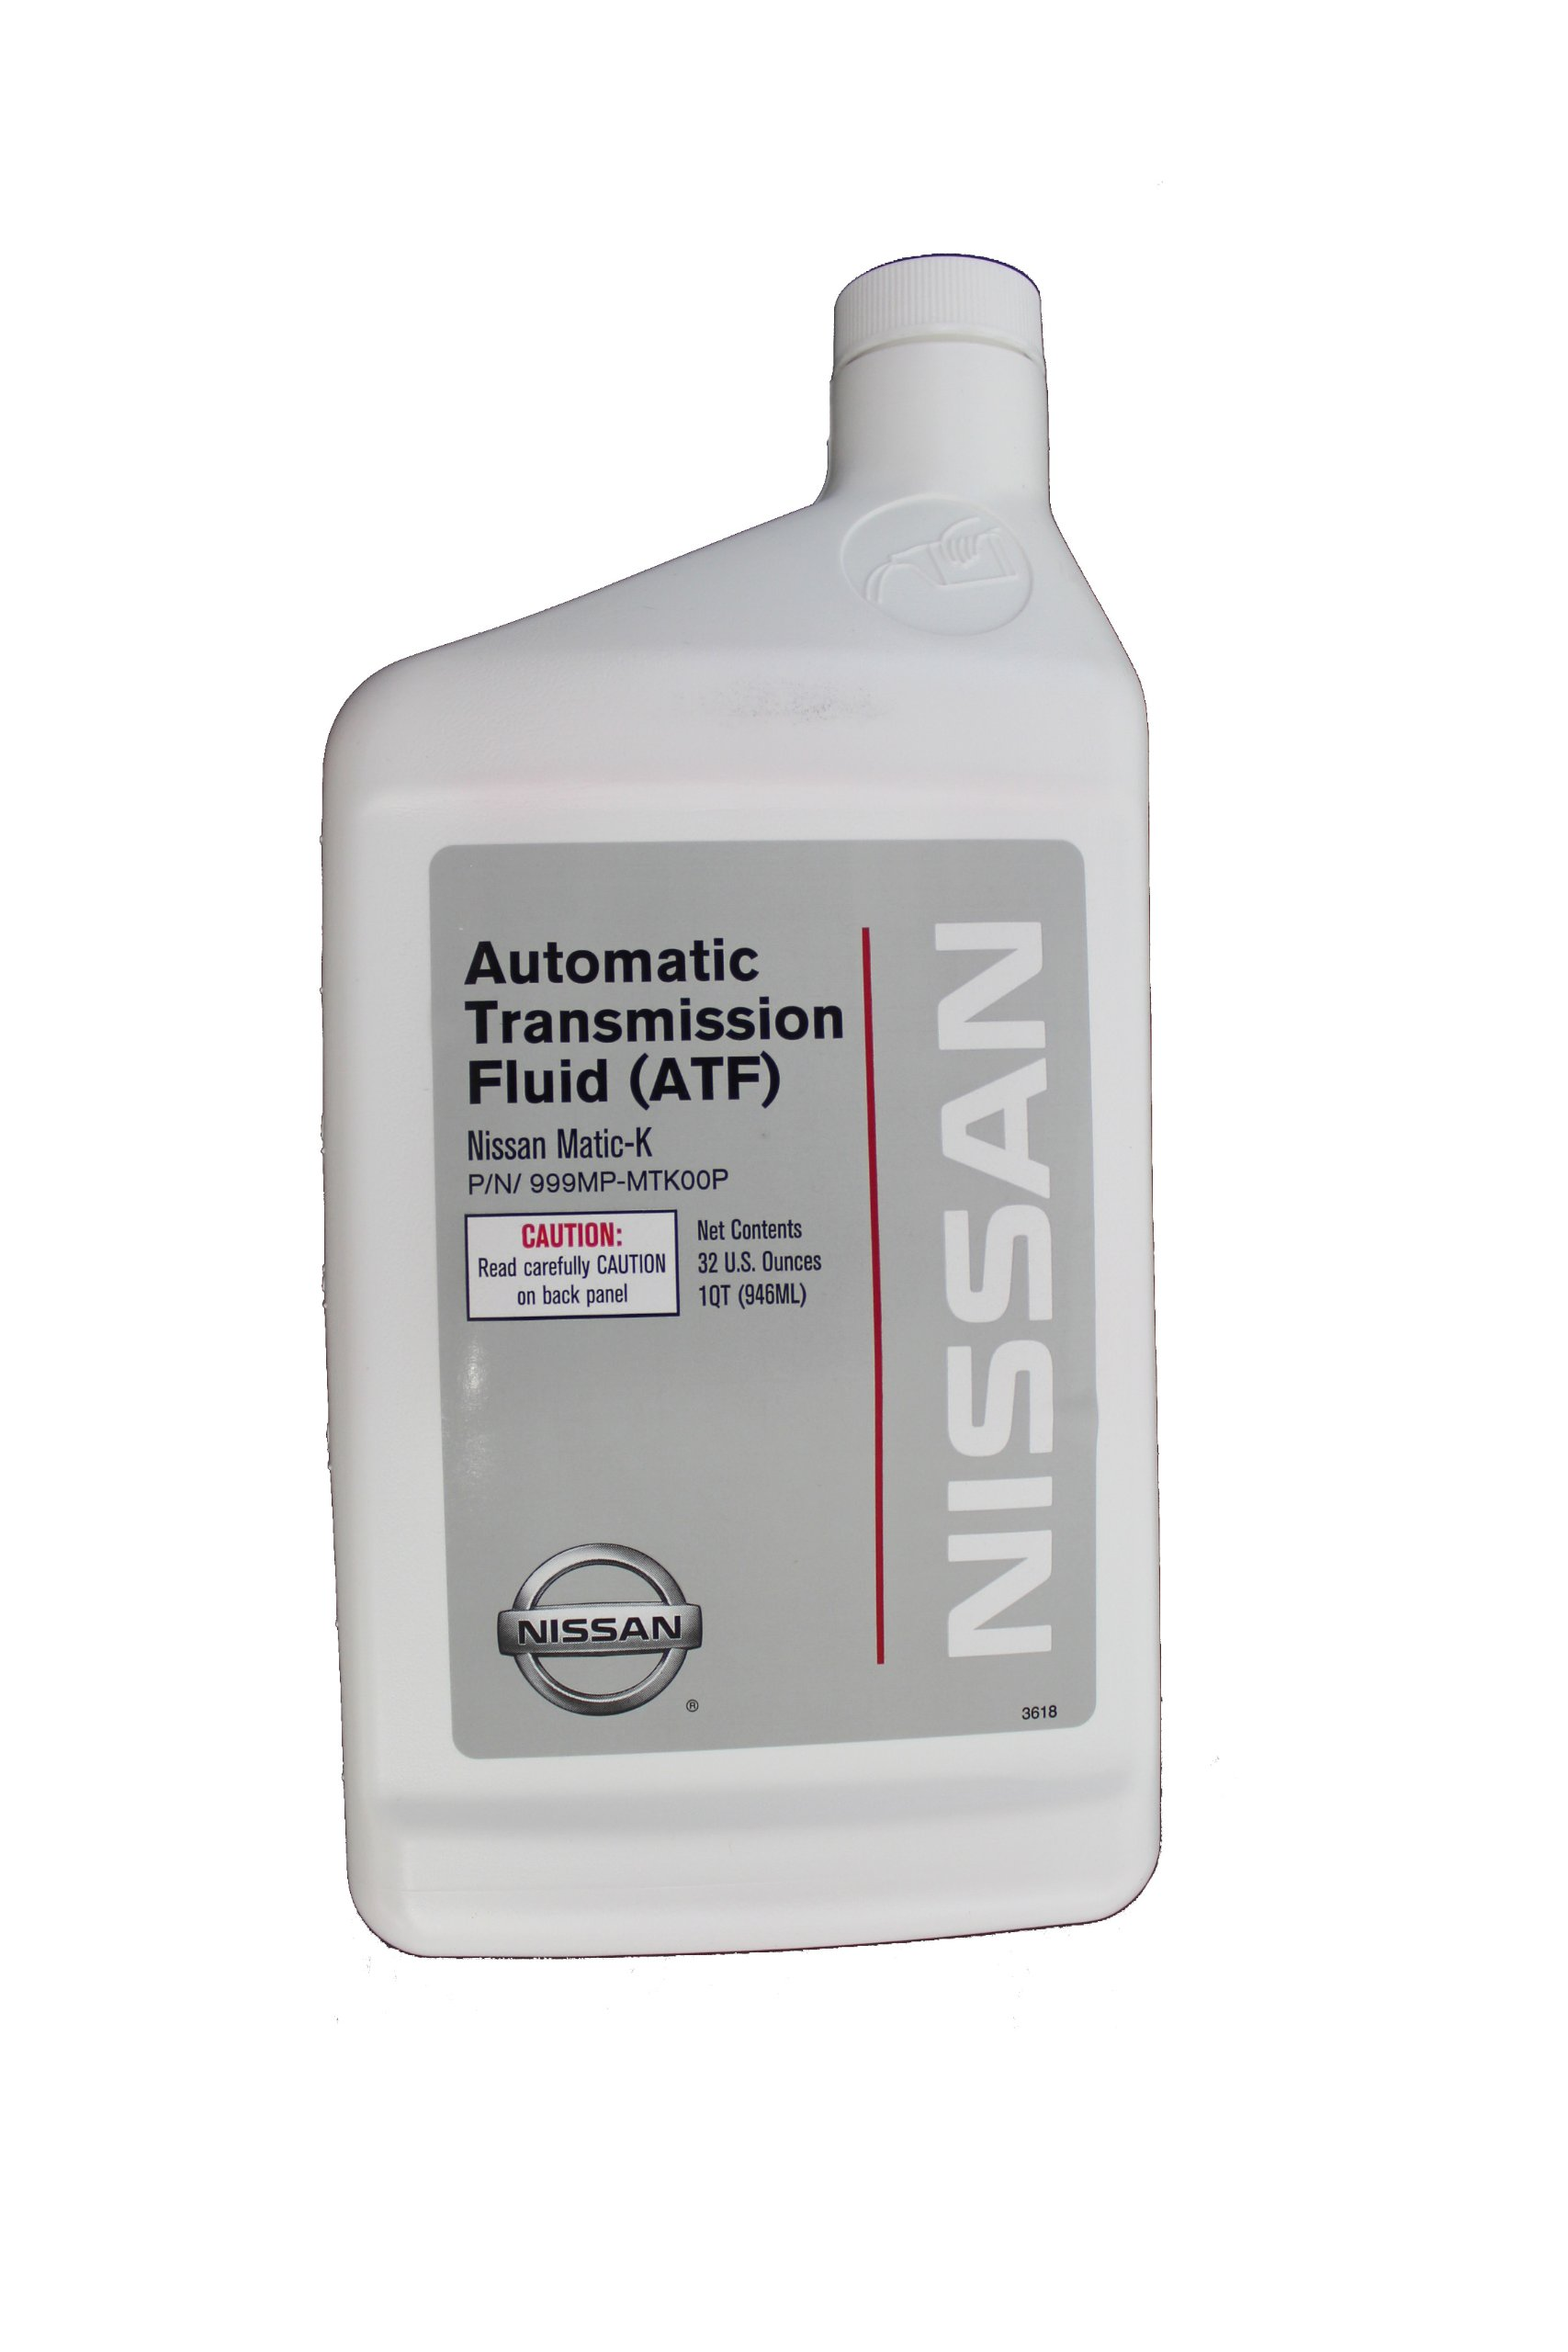 Nissan Genuine Fluid 999MP-MTK00P Matic-K Automatic Transmission Fluid - 1 Quart by Nissan